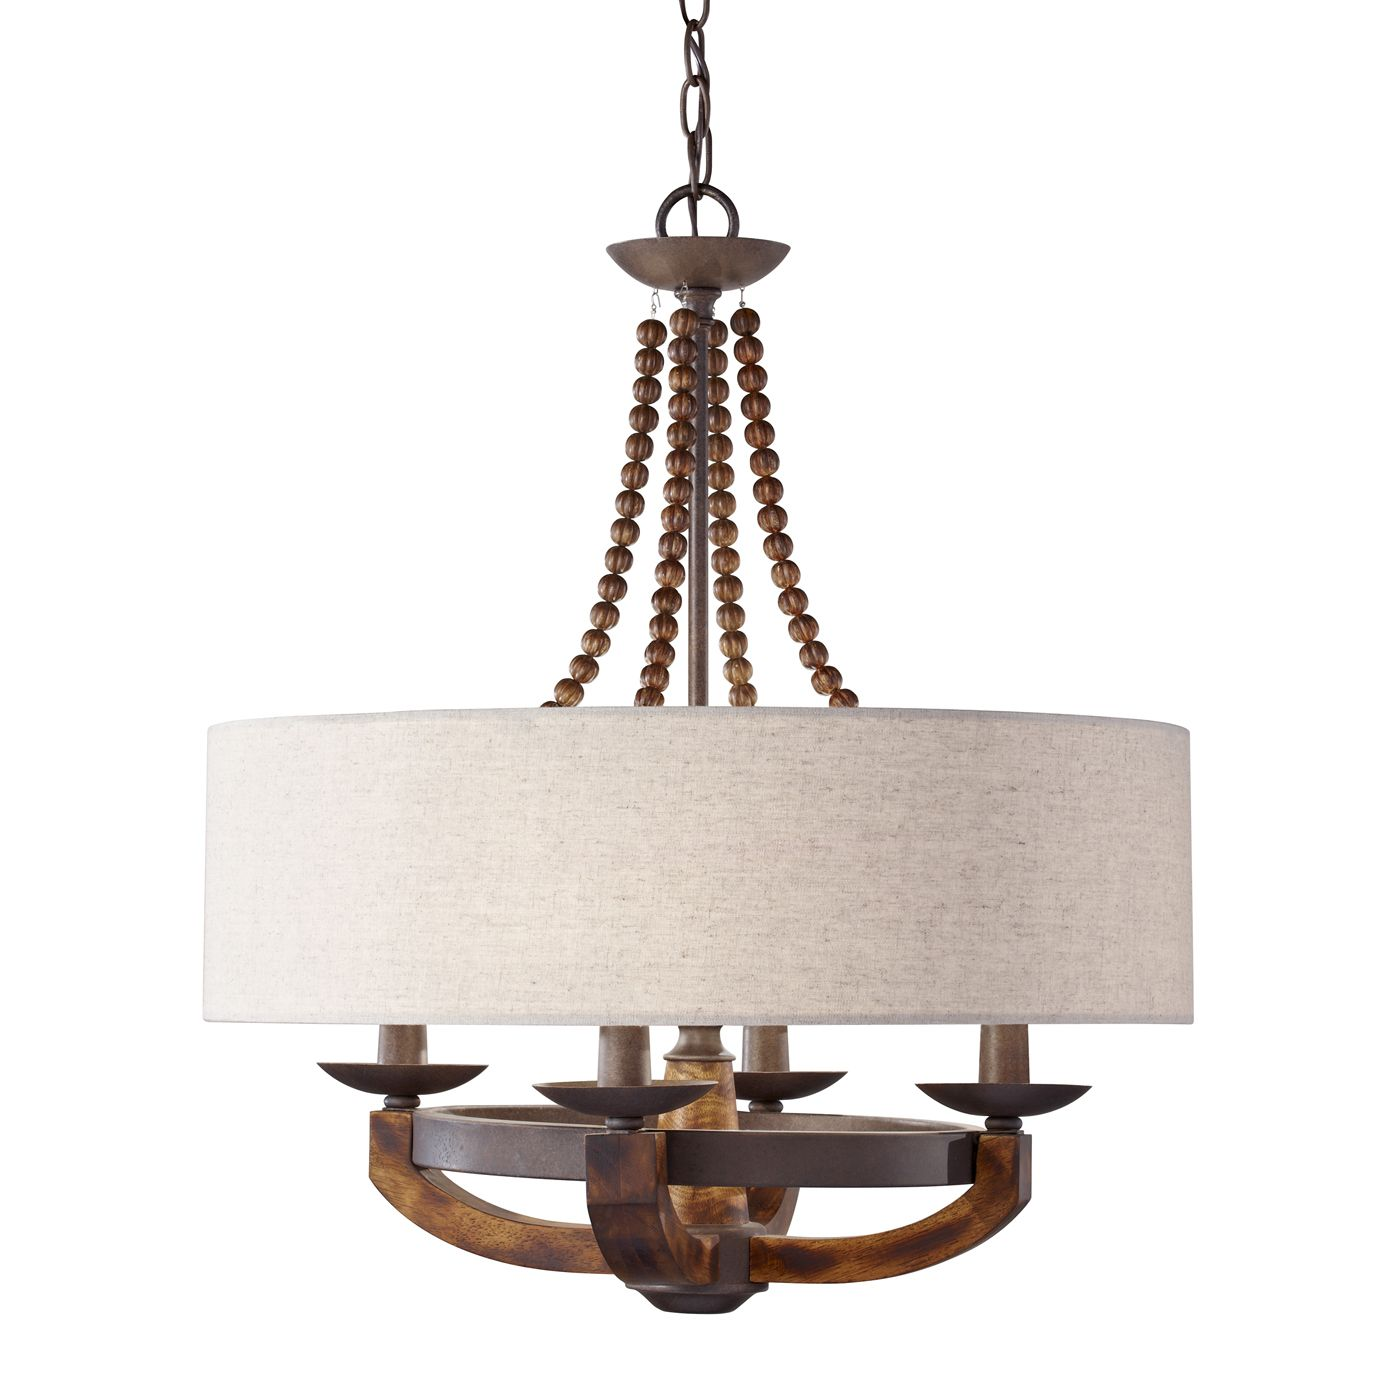 Shop feiss f27524ribwd adan 4 light chandelier at atg stores shop feiss f27524ribwd adan 4 light chandelier at atg stores arubaitofo Images